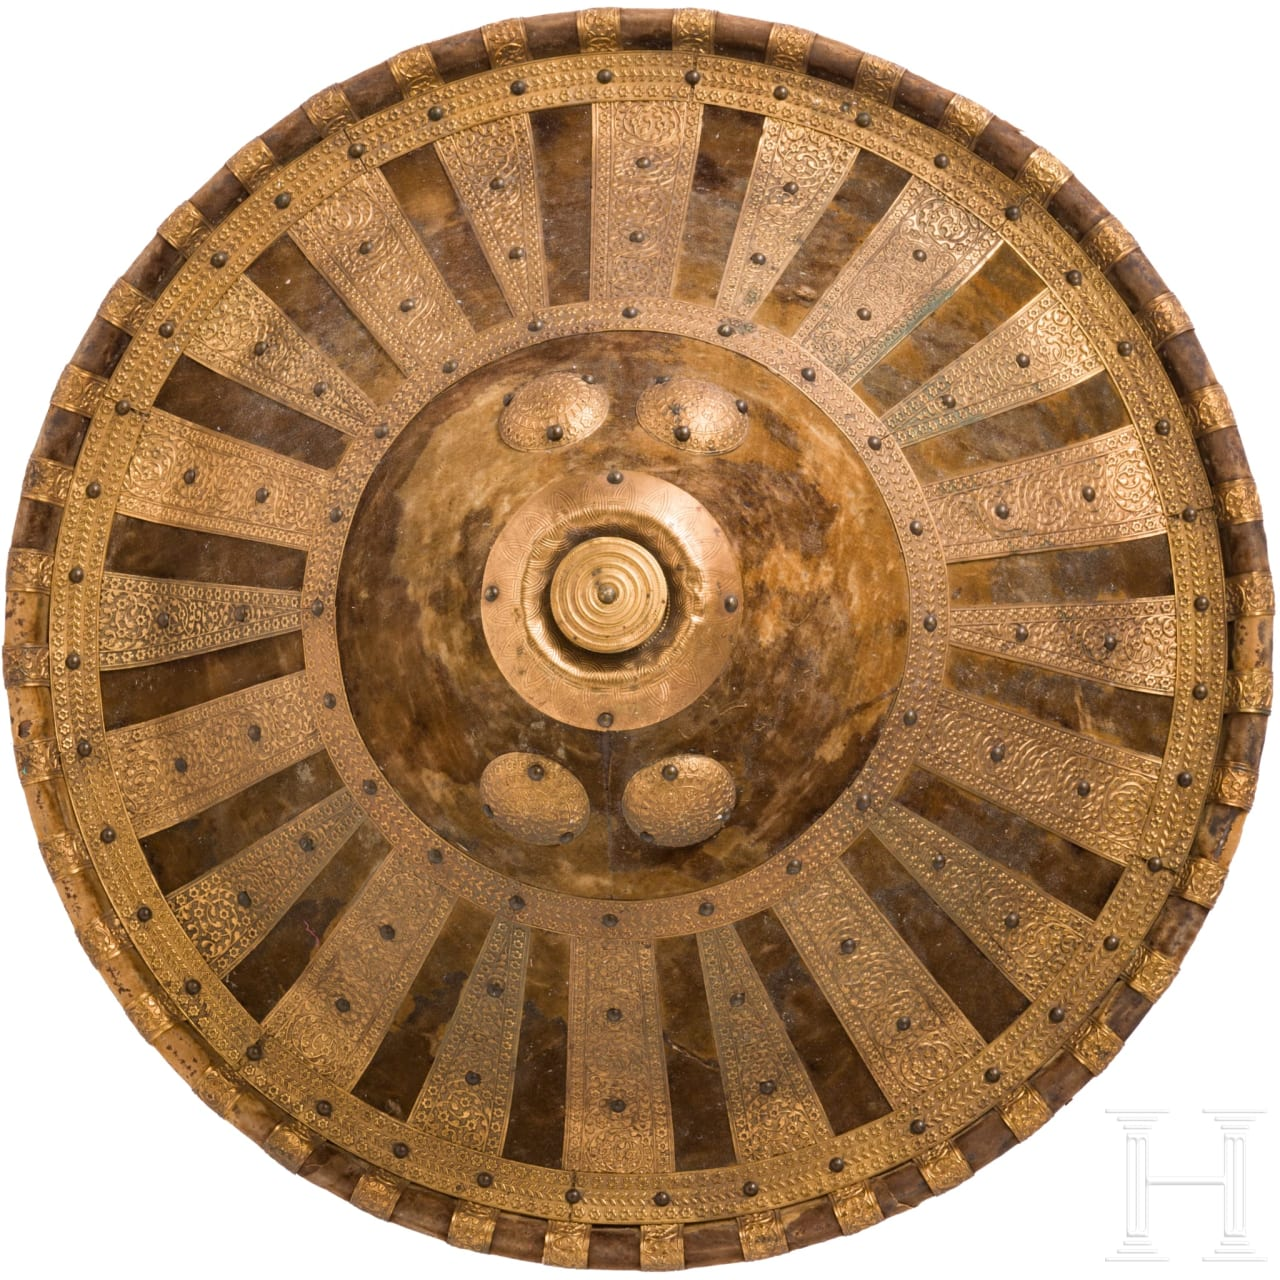 A shield of Amhara with gilded bronze fittings, Ethiopia, 1st half of the 20th century